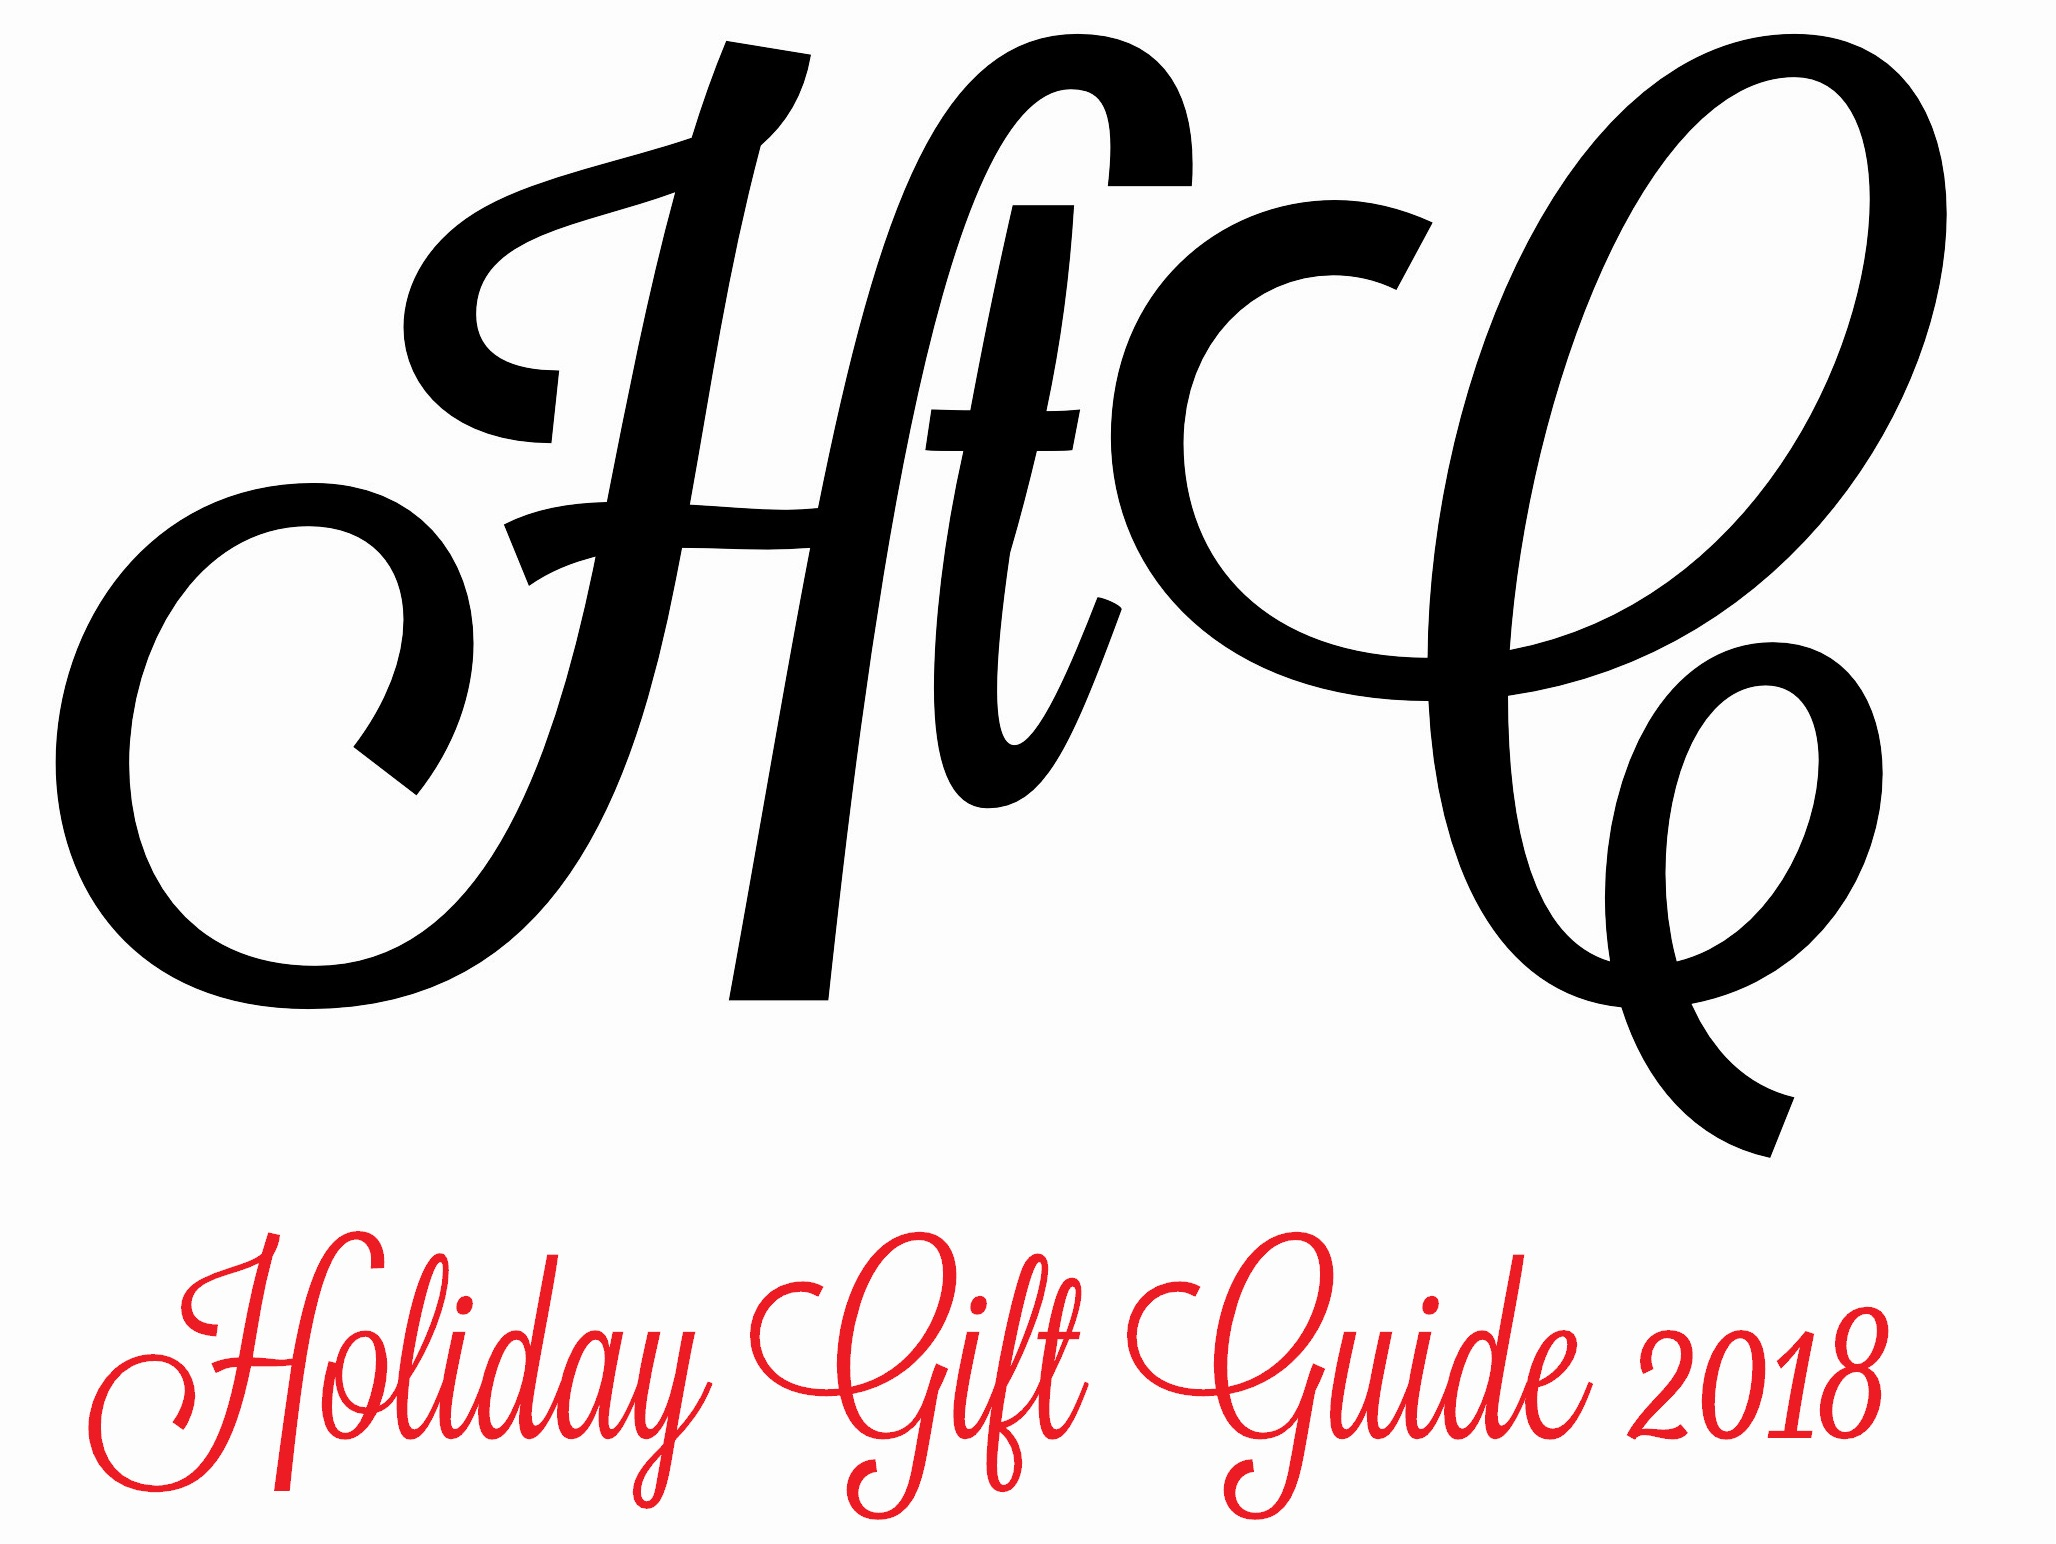 HTC Holiday Gift Guide 2018